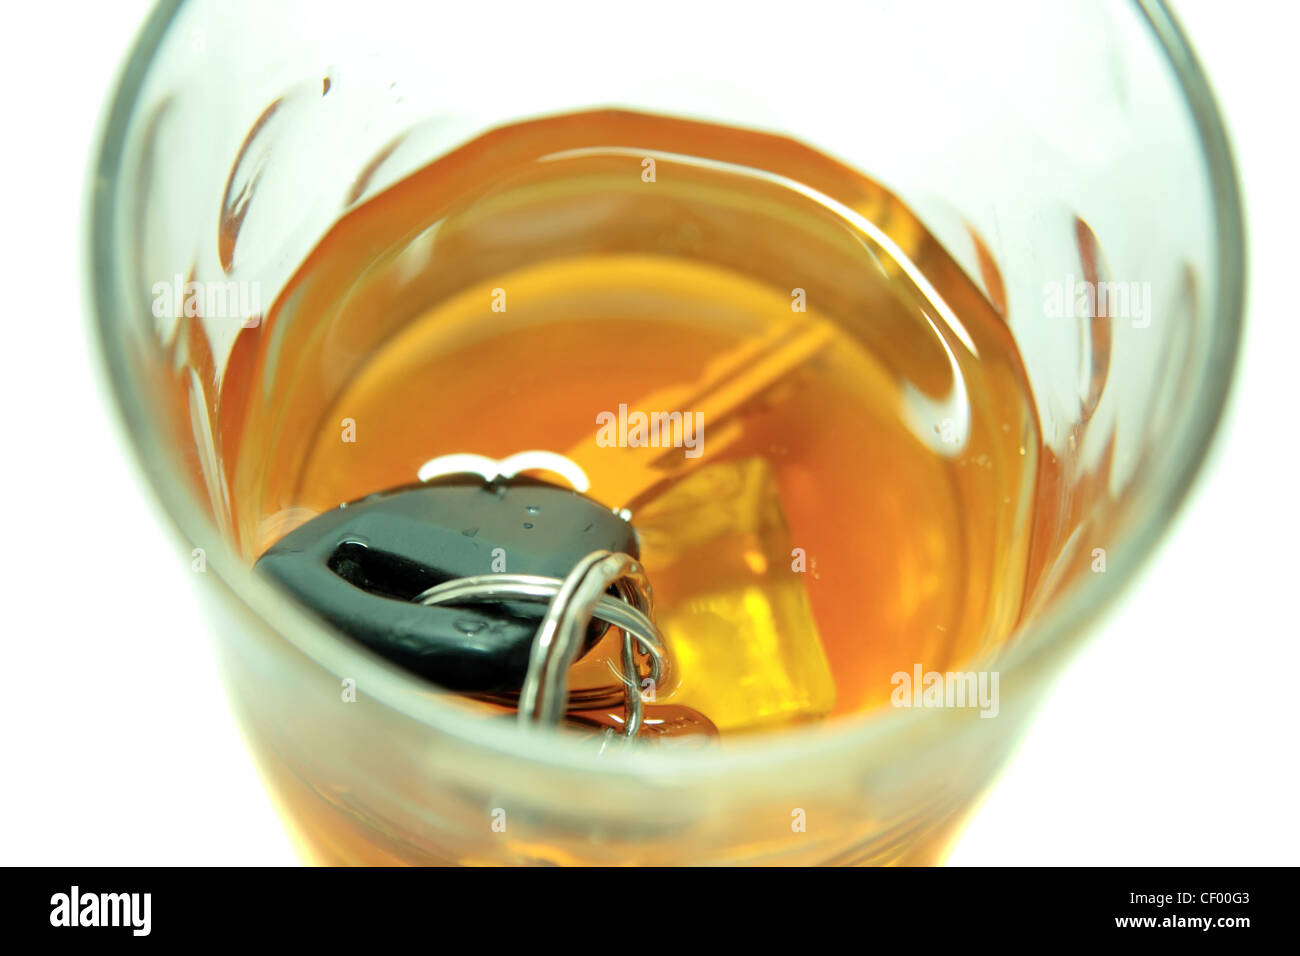 whiskey with keys inside glass on white background depicting drunk driving and addictions can kill - Stock Image